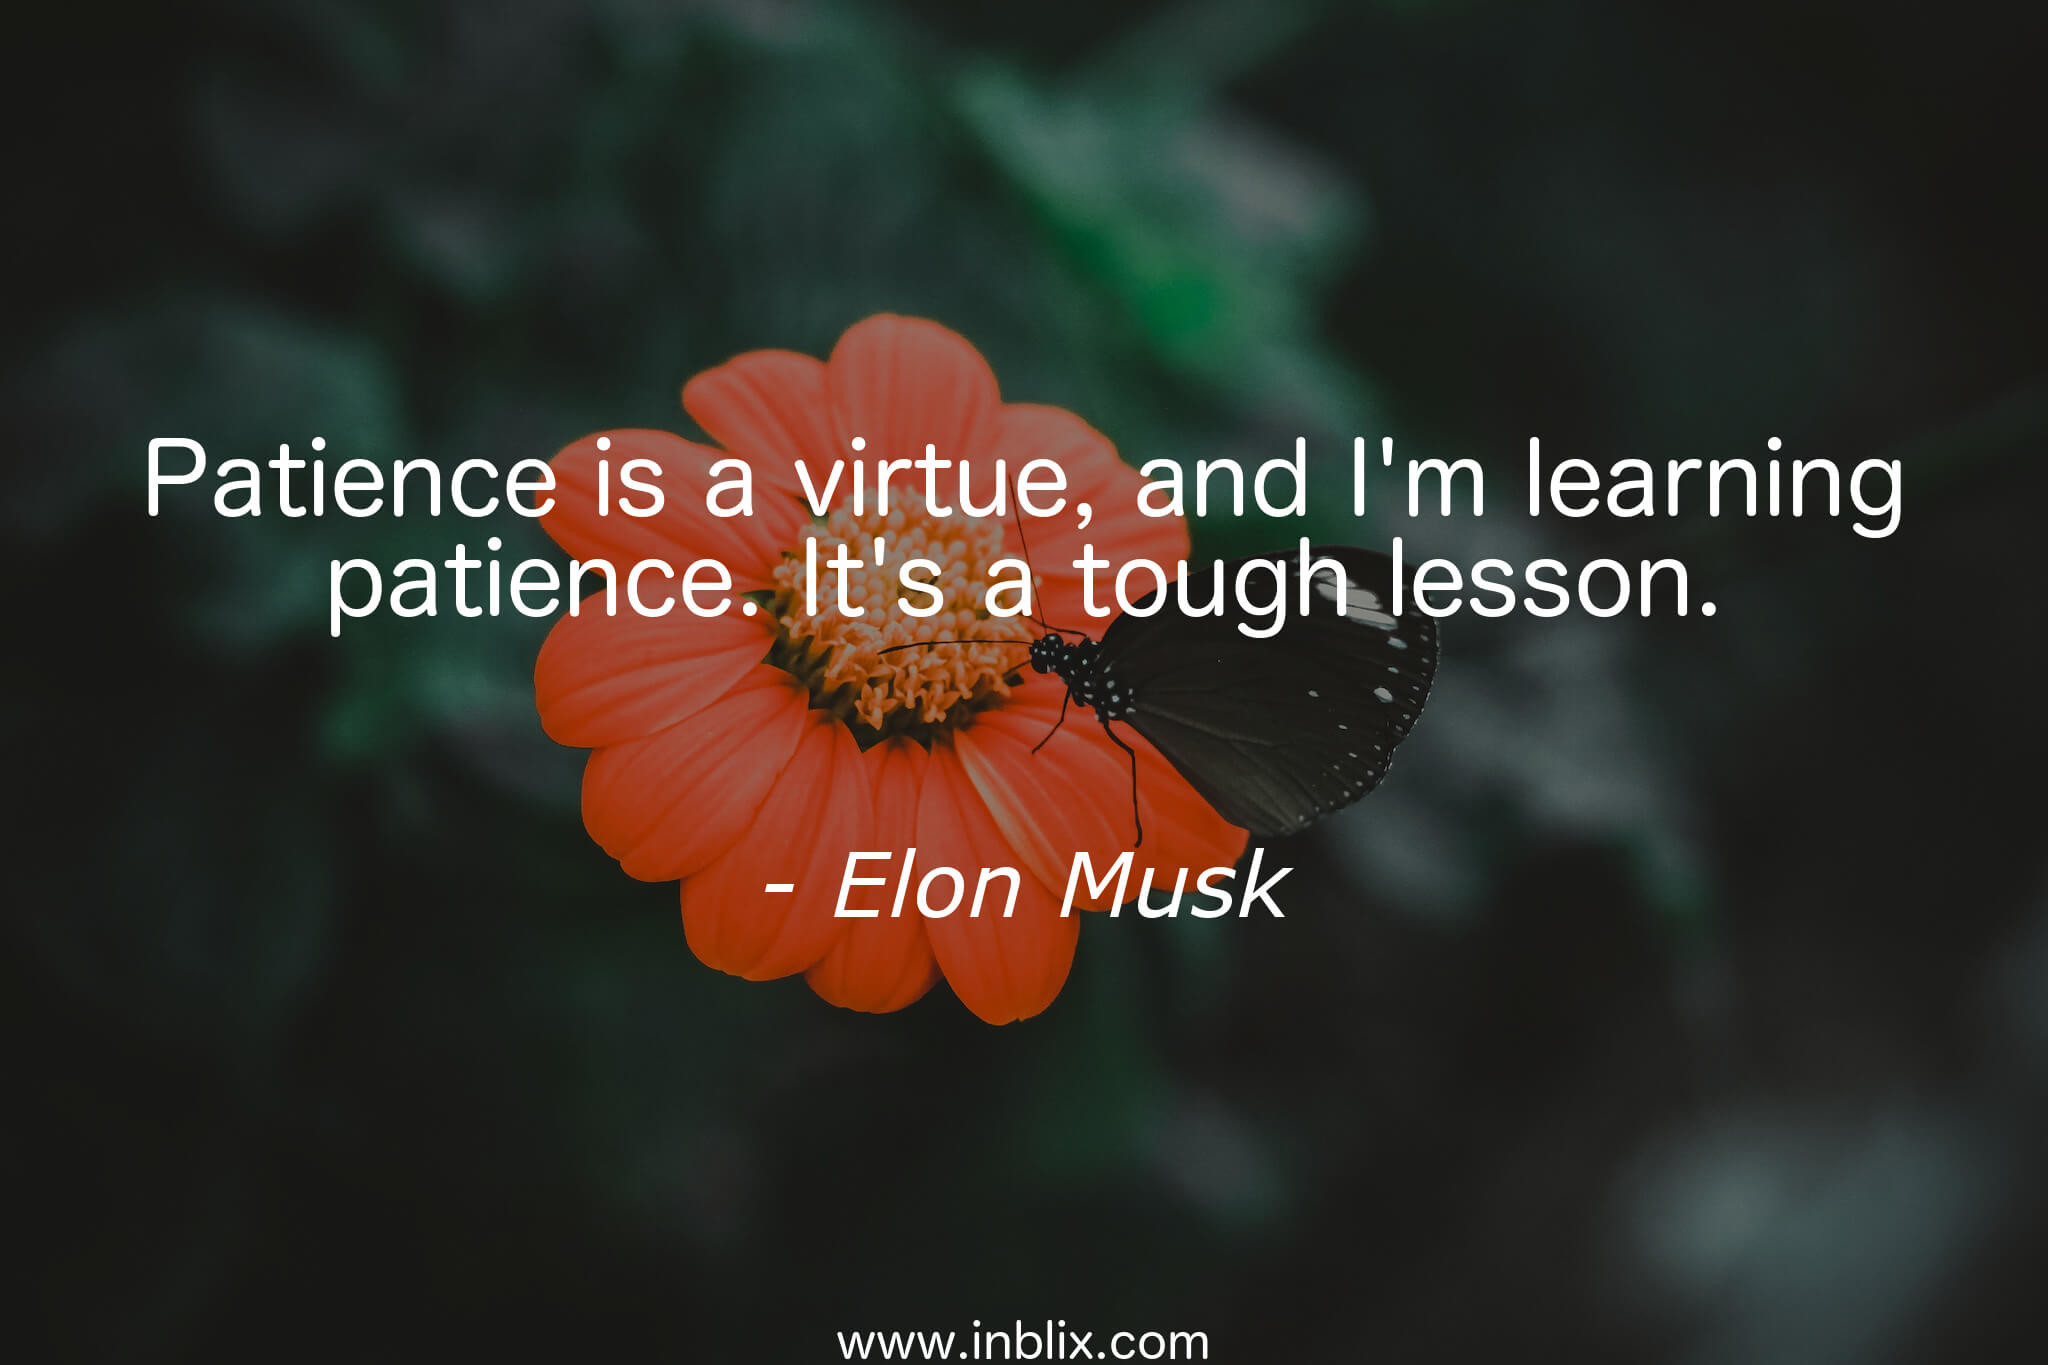 Patience is a virtue, and I'm learning patience. It's a tough lesson